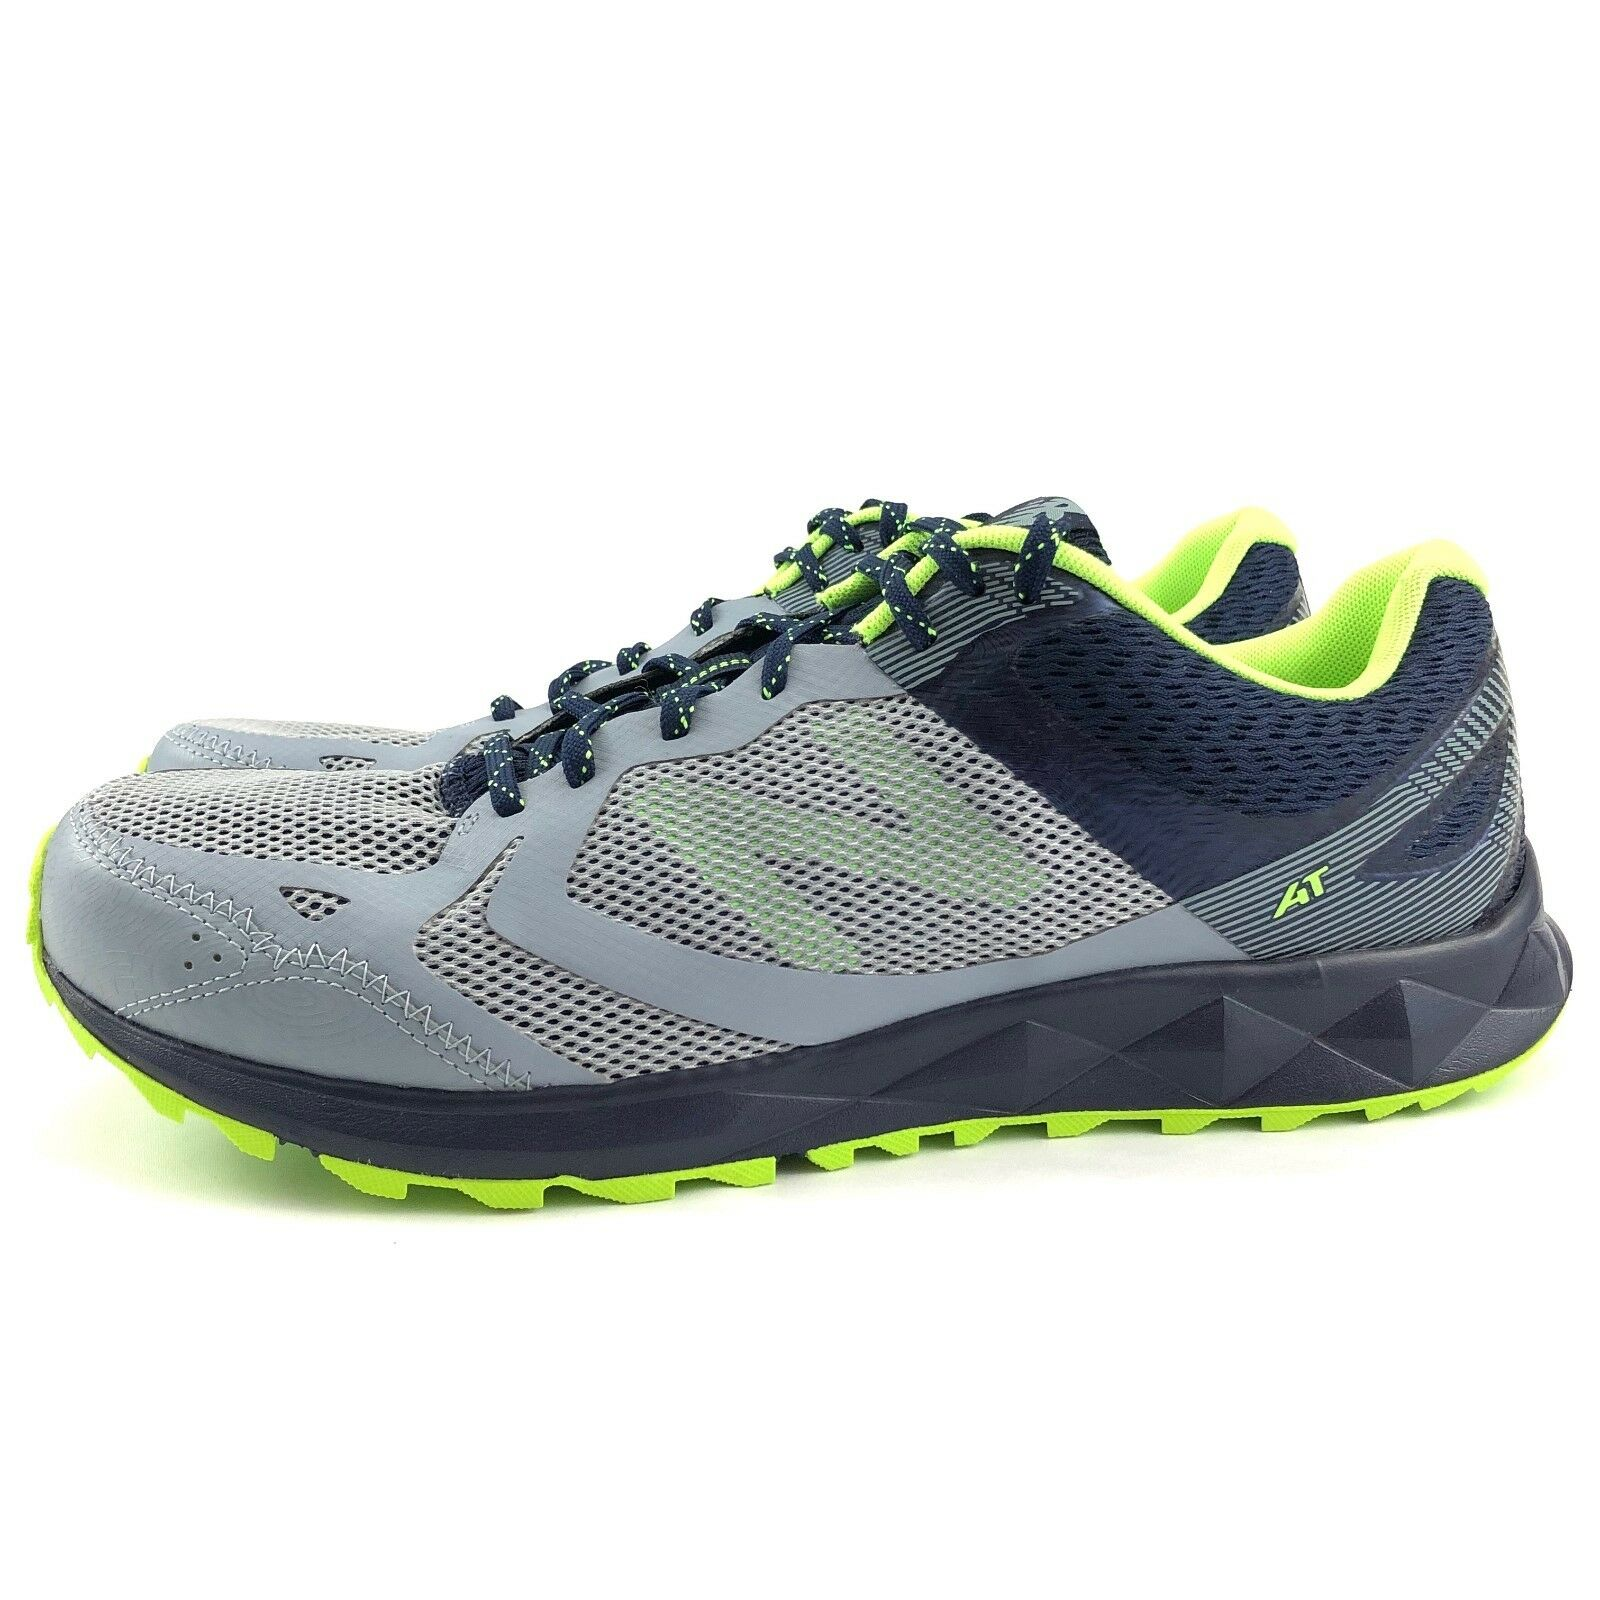 New Balance Speed Ride All Terrain AT Athletic shoes Mens Size 13 Trail Running